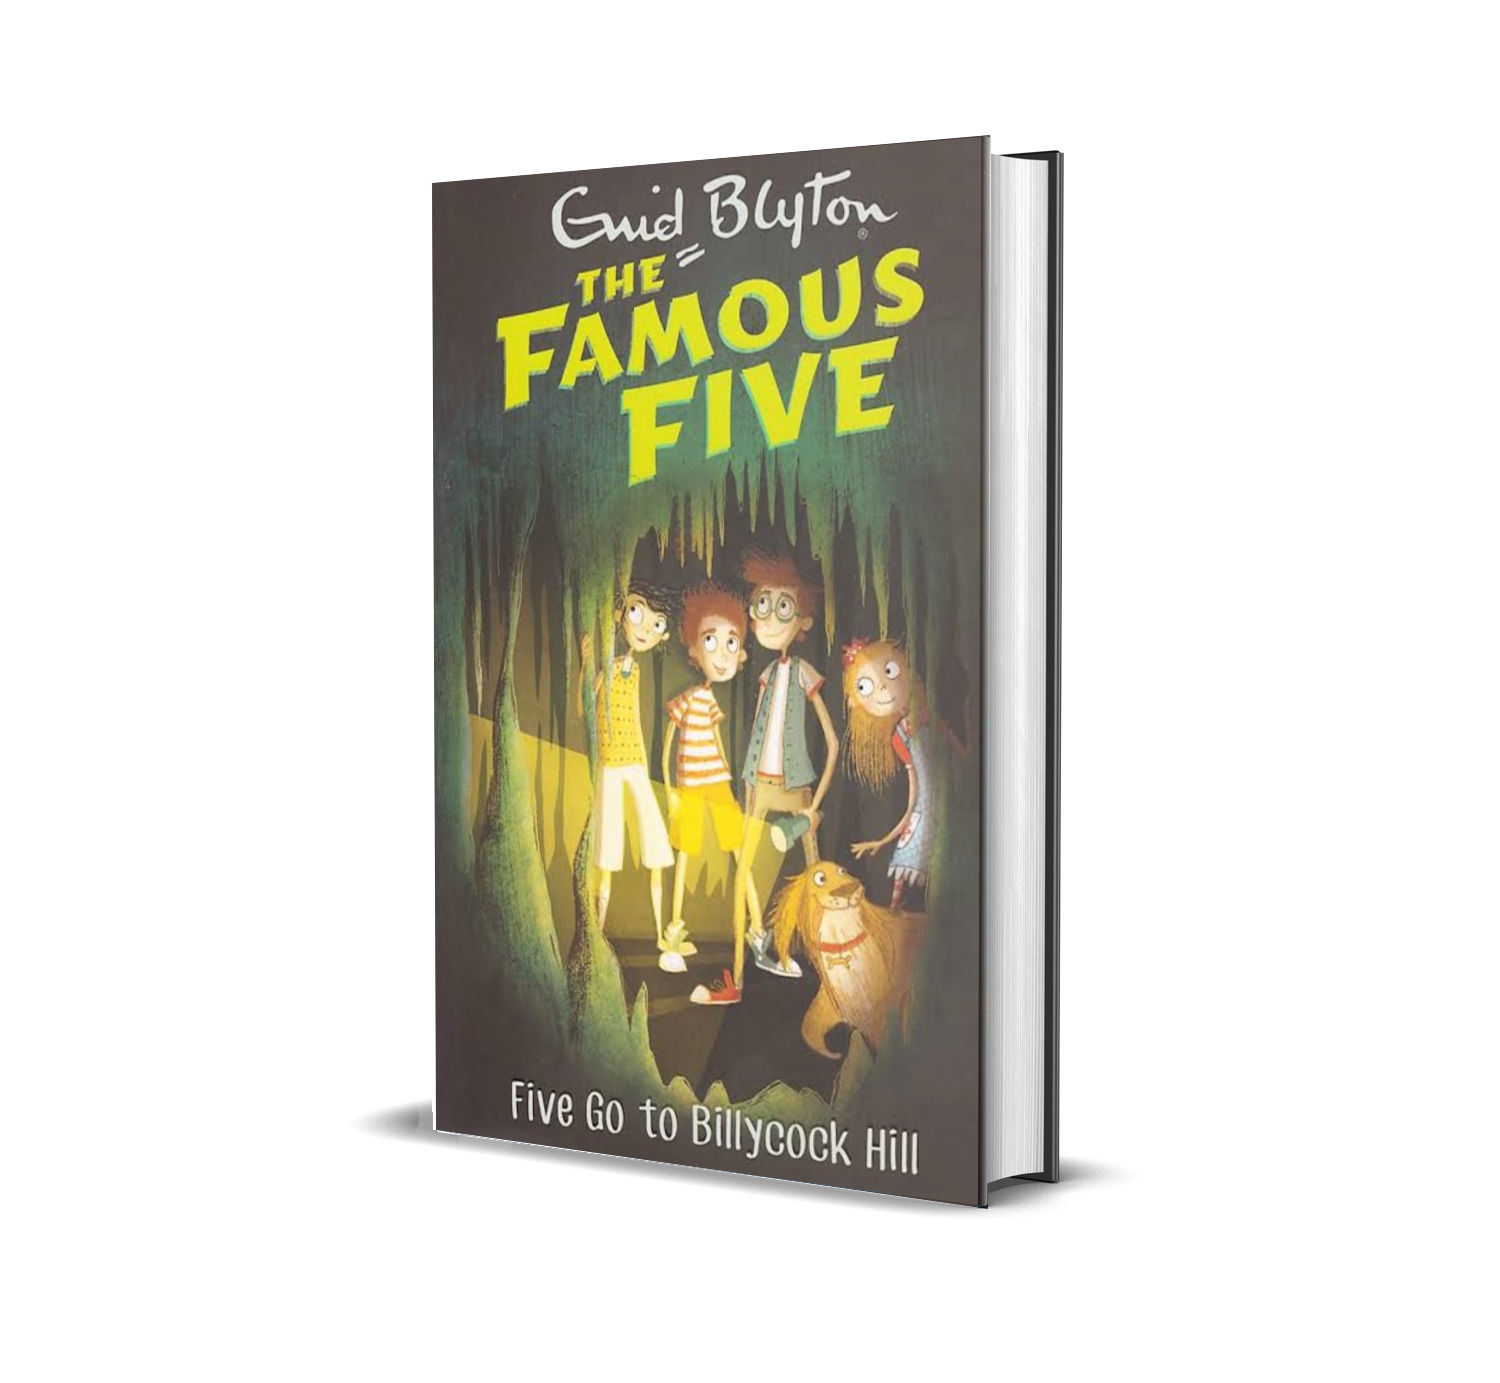 Five go to billycock hill:famous five book 16- Enid Blyton